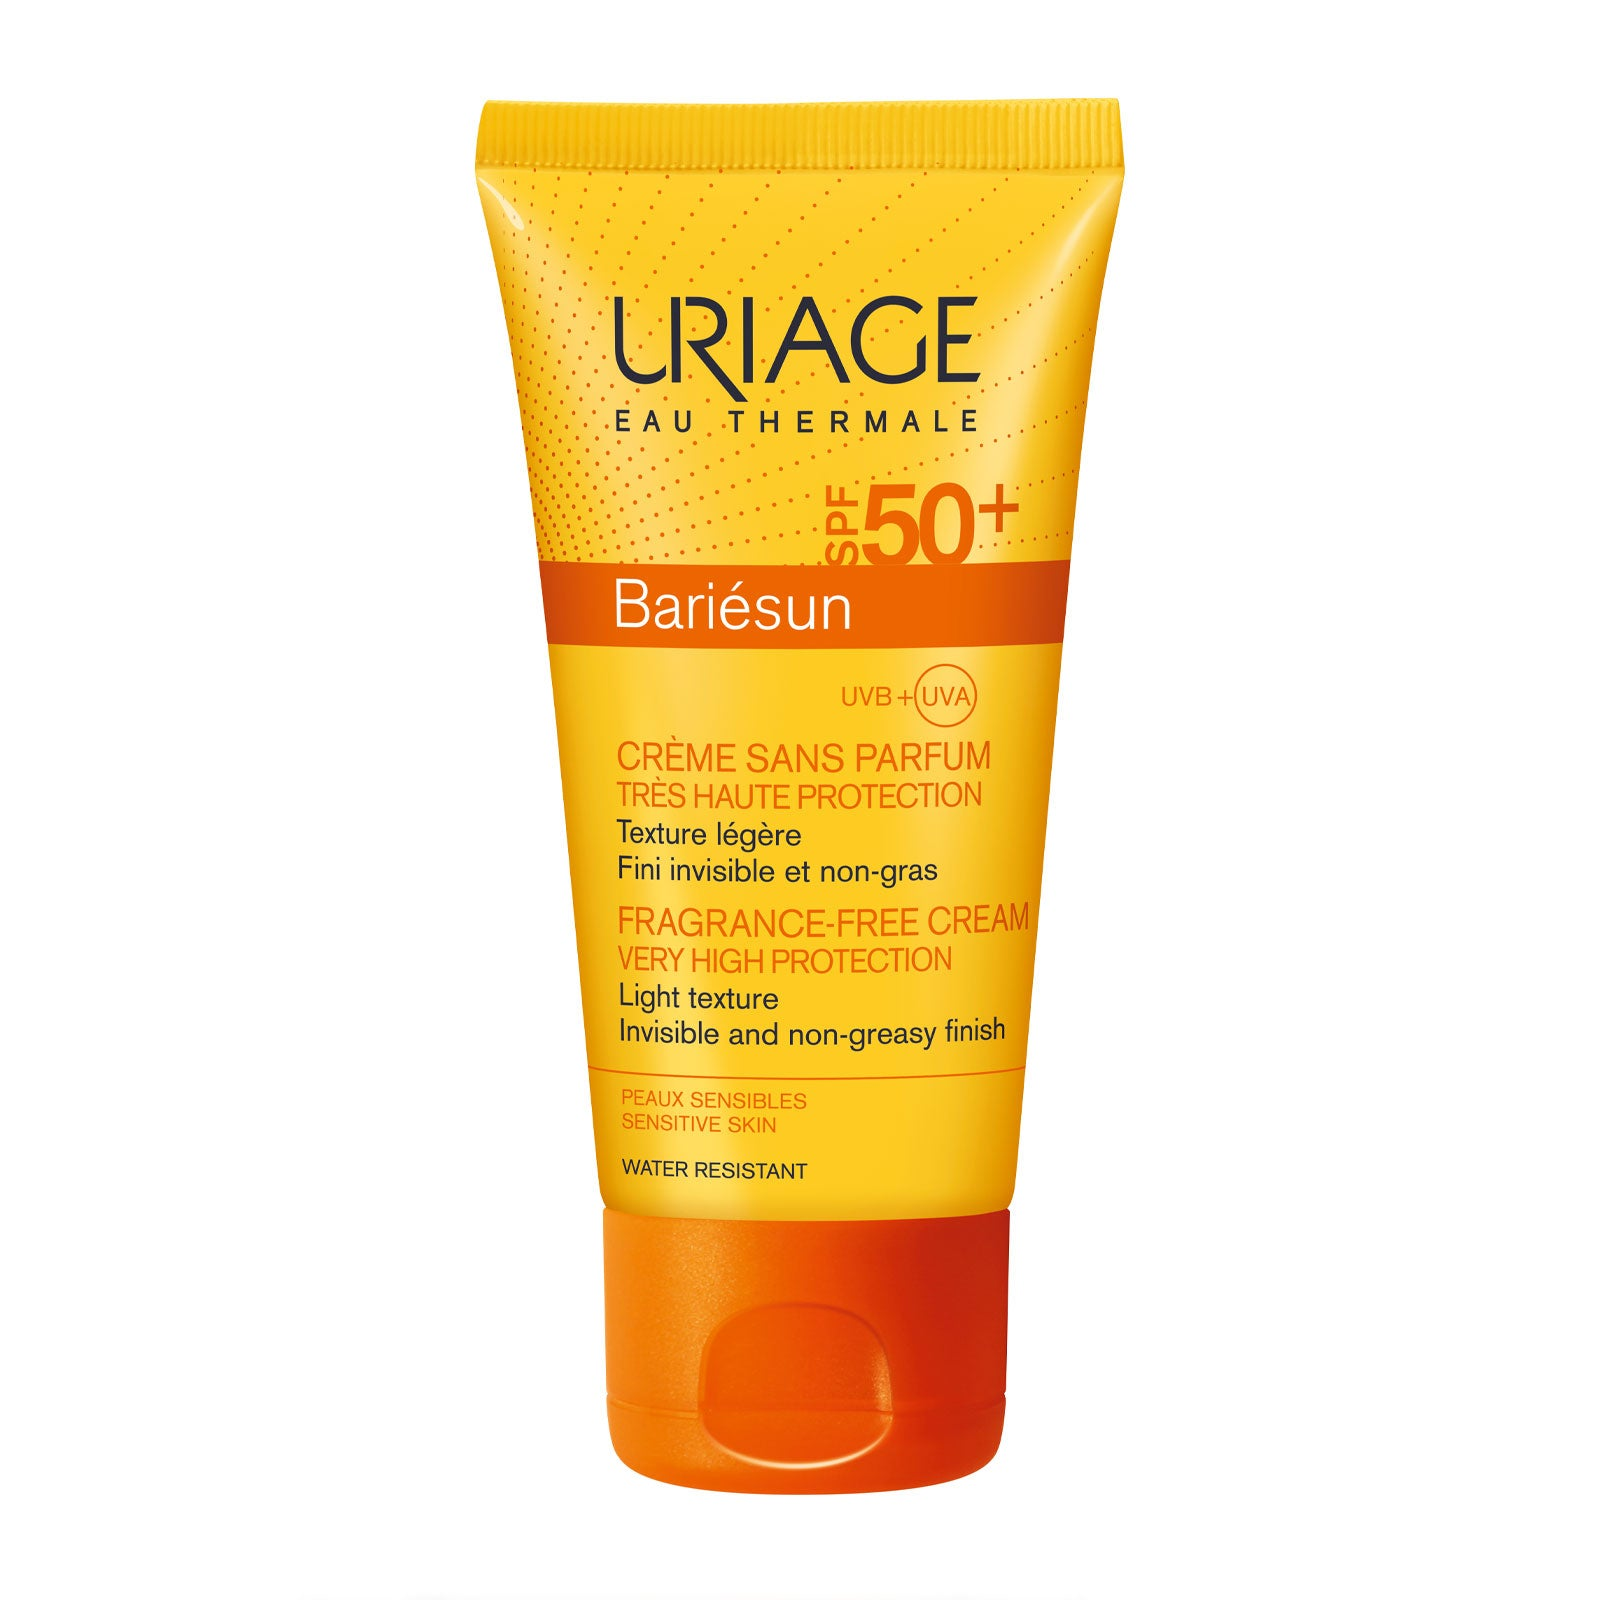 Uriage Bariesun SPF50+ Fragrance-Free Cream 50ml